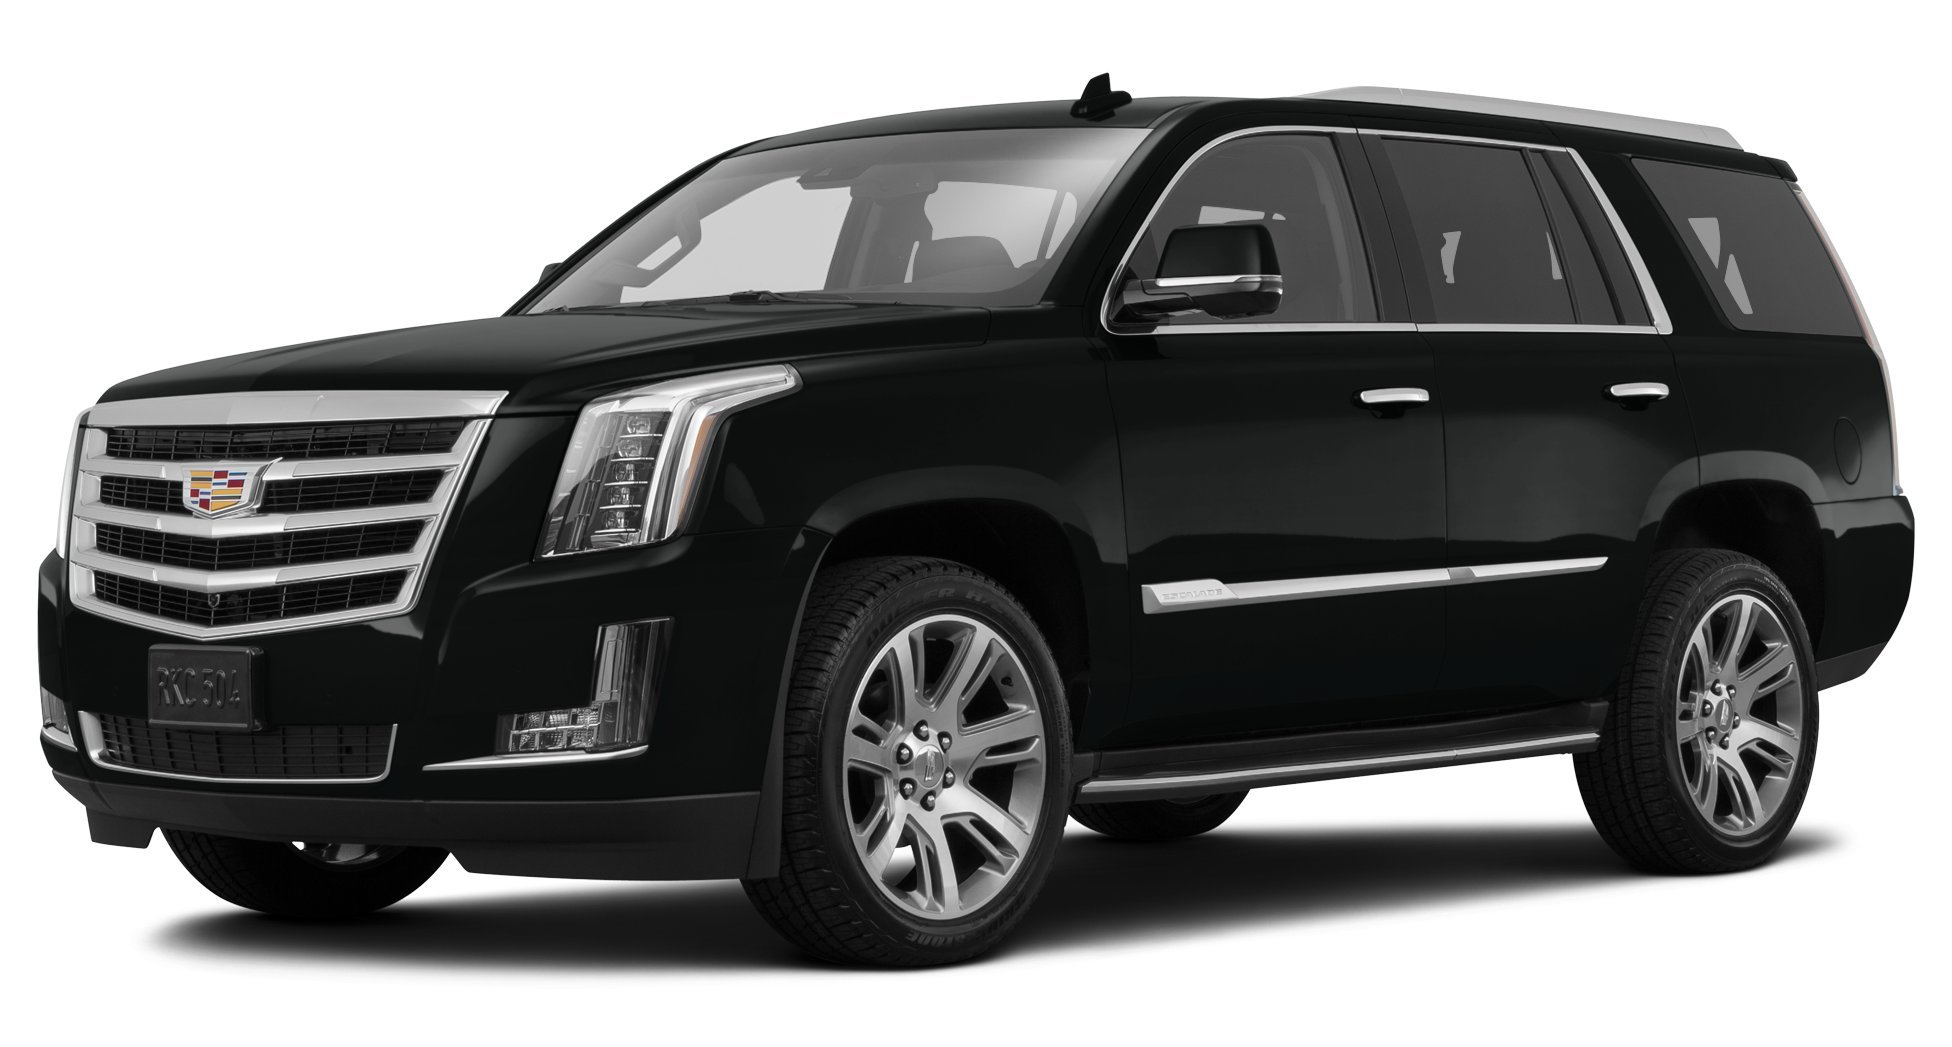 2017 cadillac escalade reviews images and specs vehicles. Black Bedroom Furniture Sets. Home Design Ideas